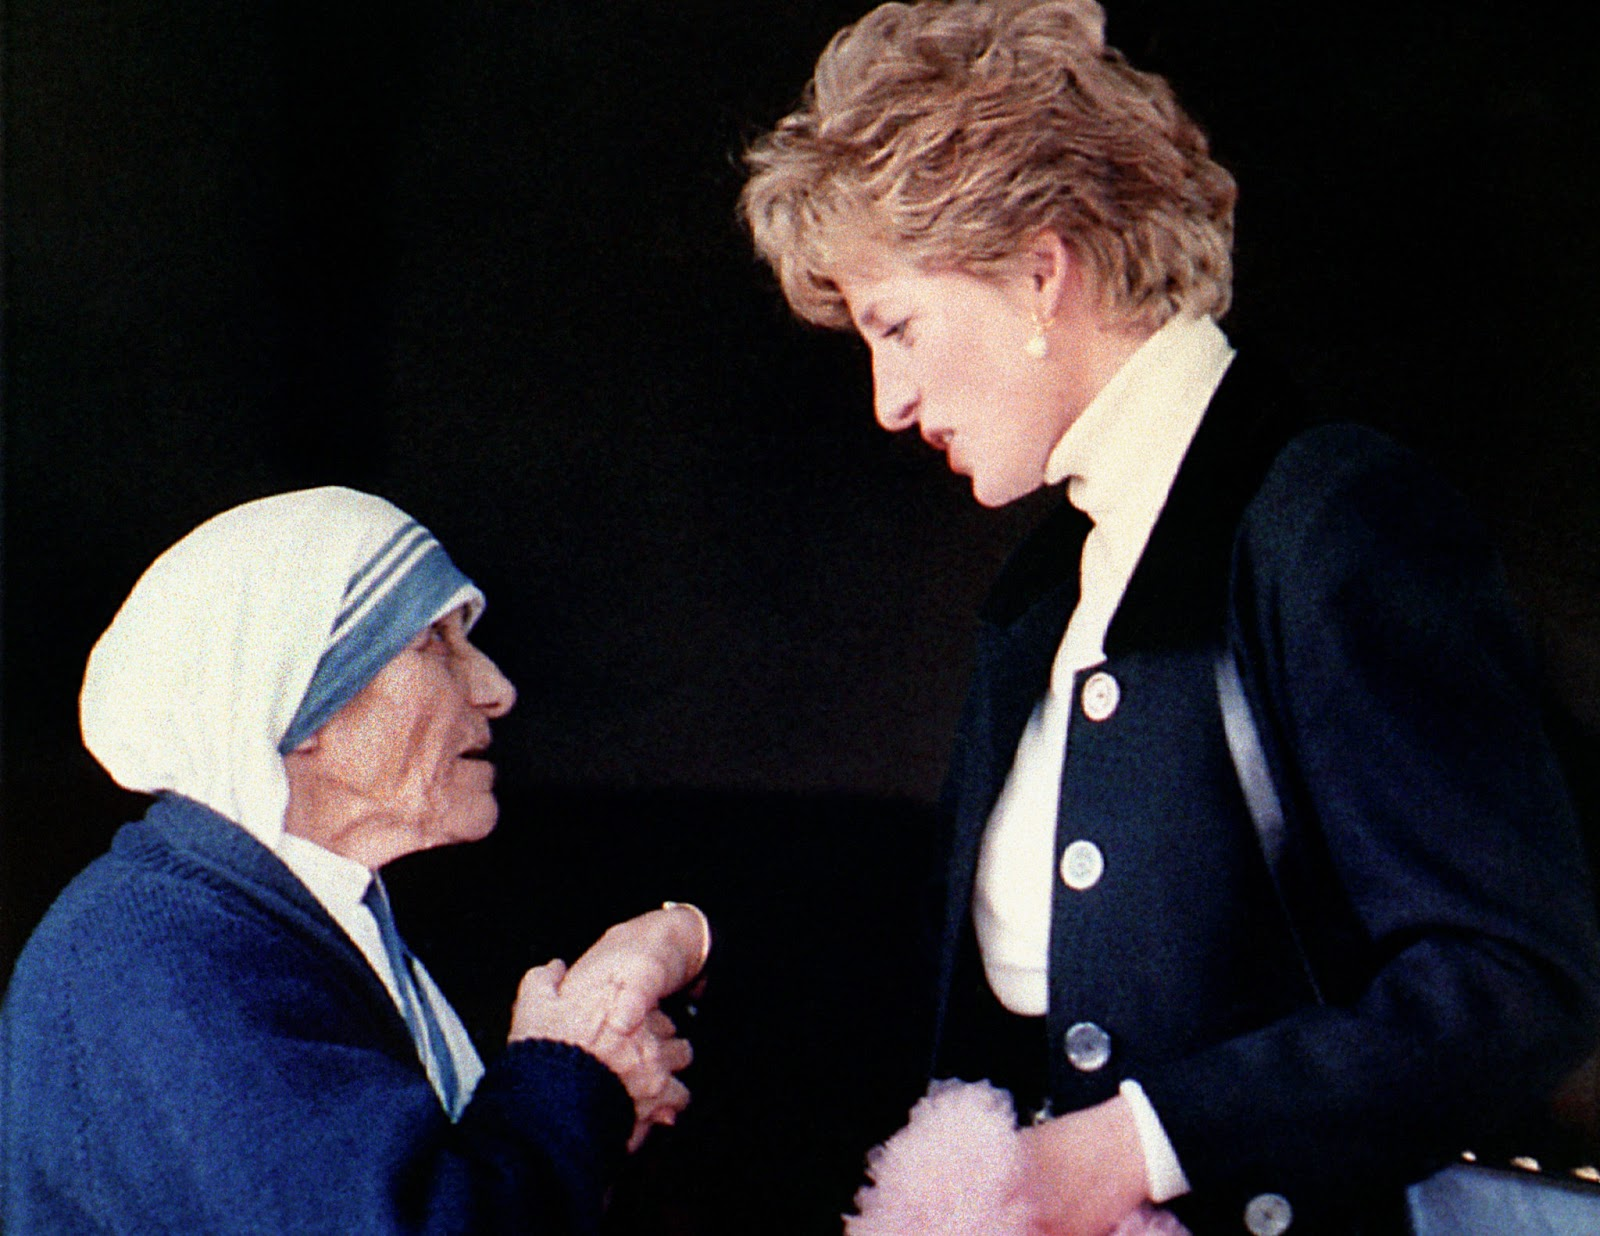 Princess of Wales meeting Mother Teresa in Rome.